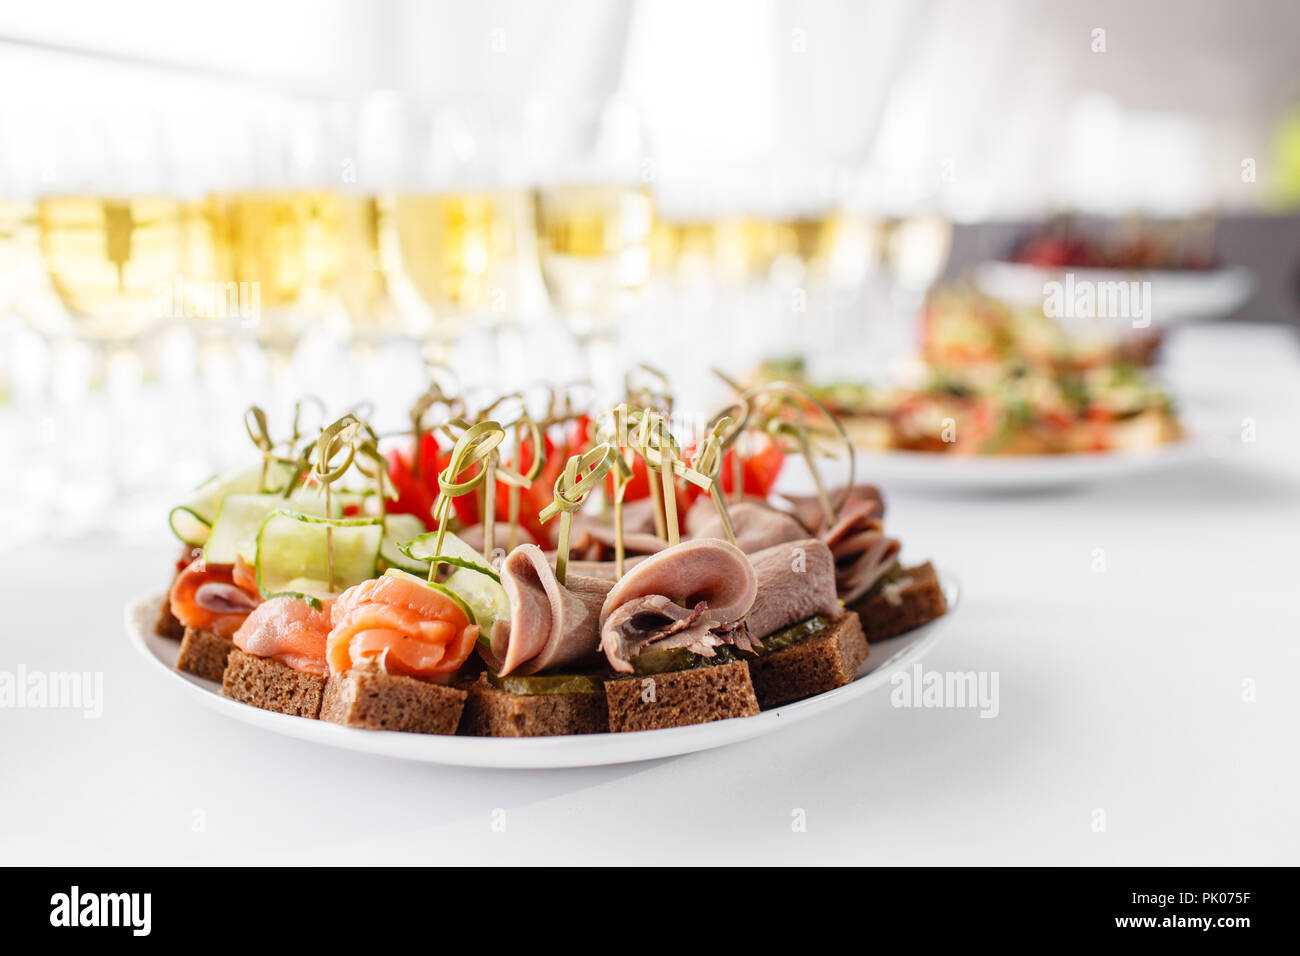 rye bread sandwiches, canapes, bruschetta on white plate. solemn banquet. Lot of glasses champagne or wine on the table in restaurant. buffet table with lots of delicious snacks. - Stock Image